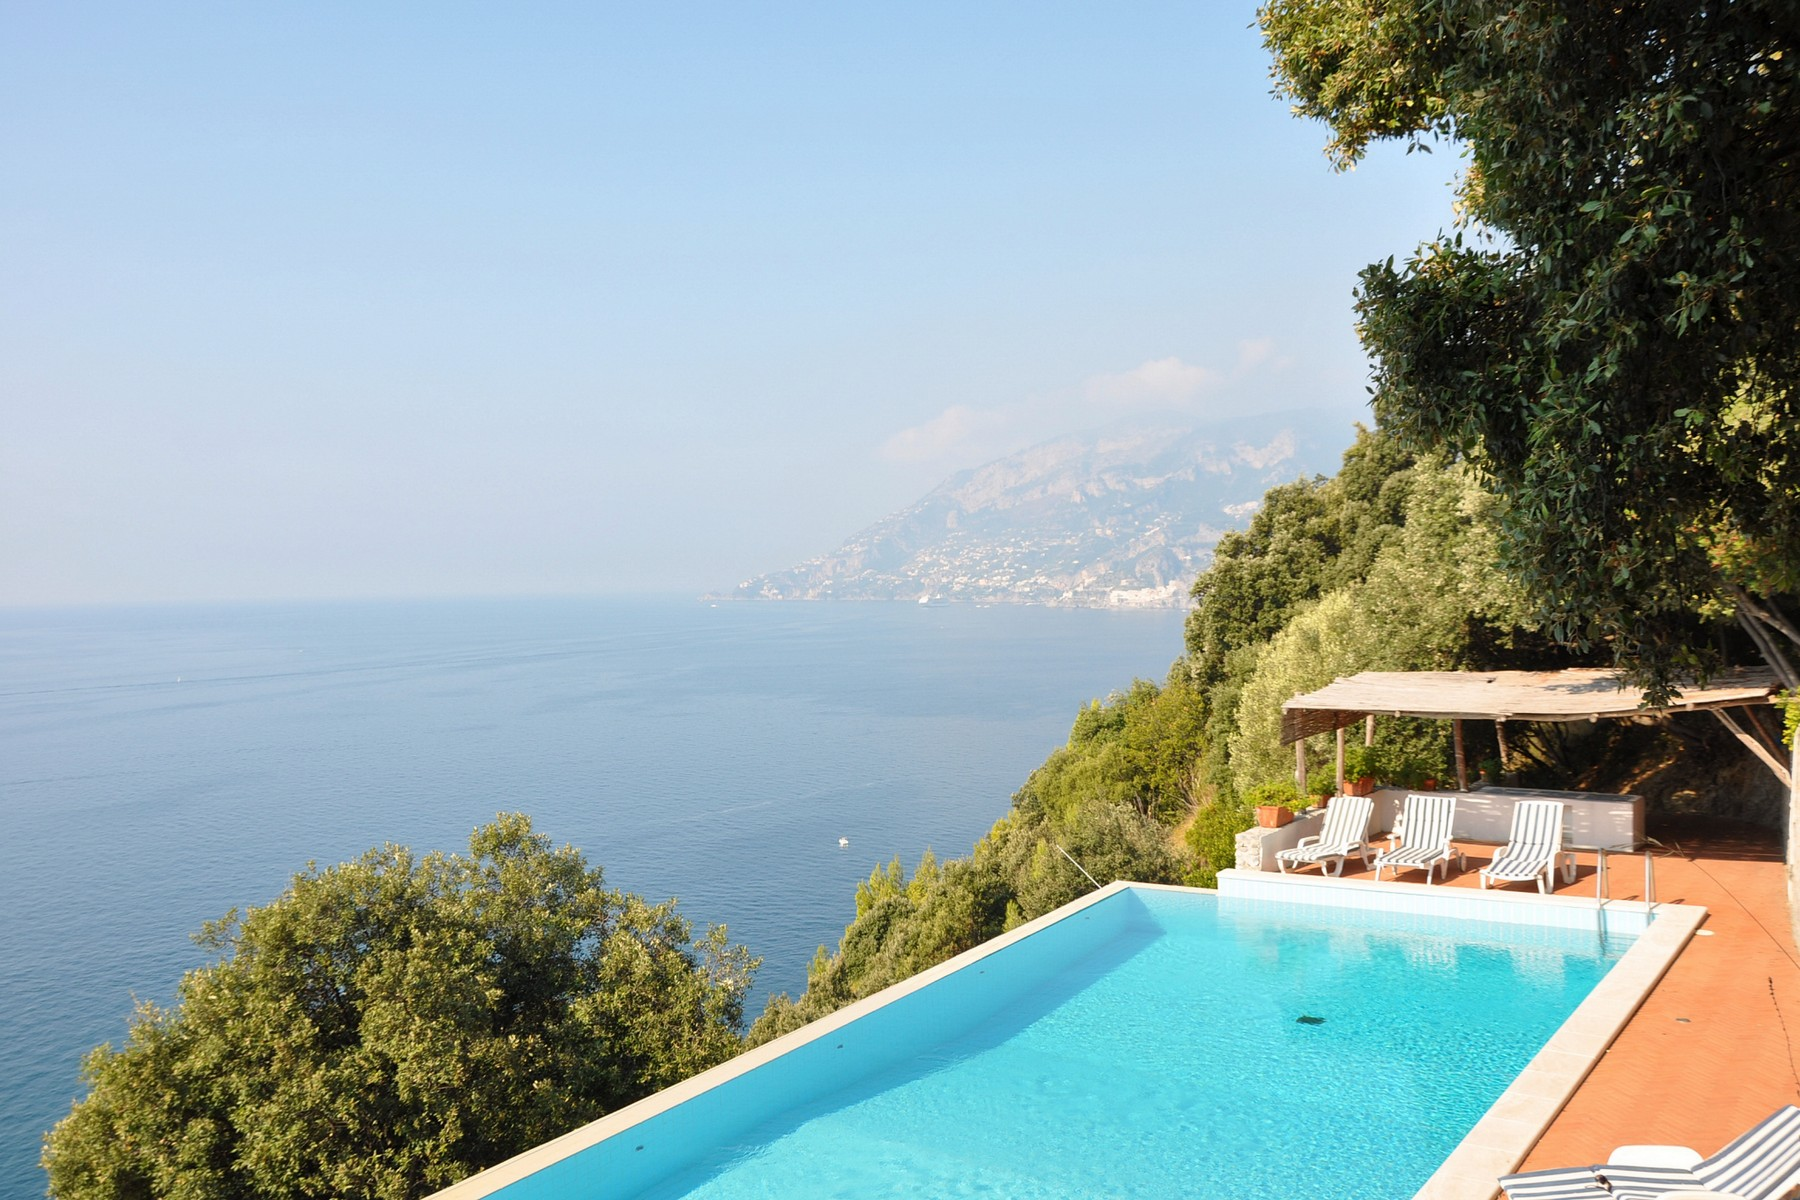 Single Family Home for Sale at Villa pied dans l'eau in Amalfi coast Maiori, Naples 84100 Italy